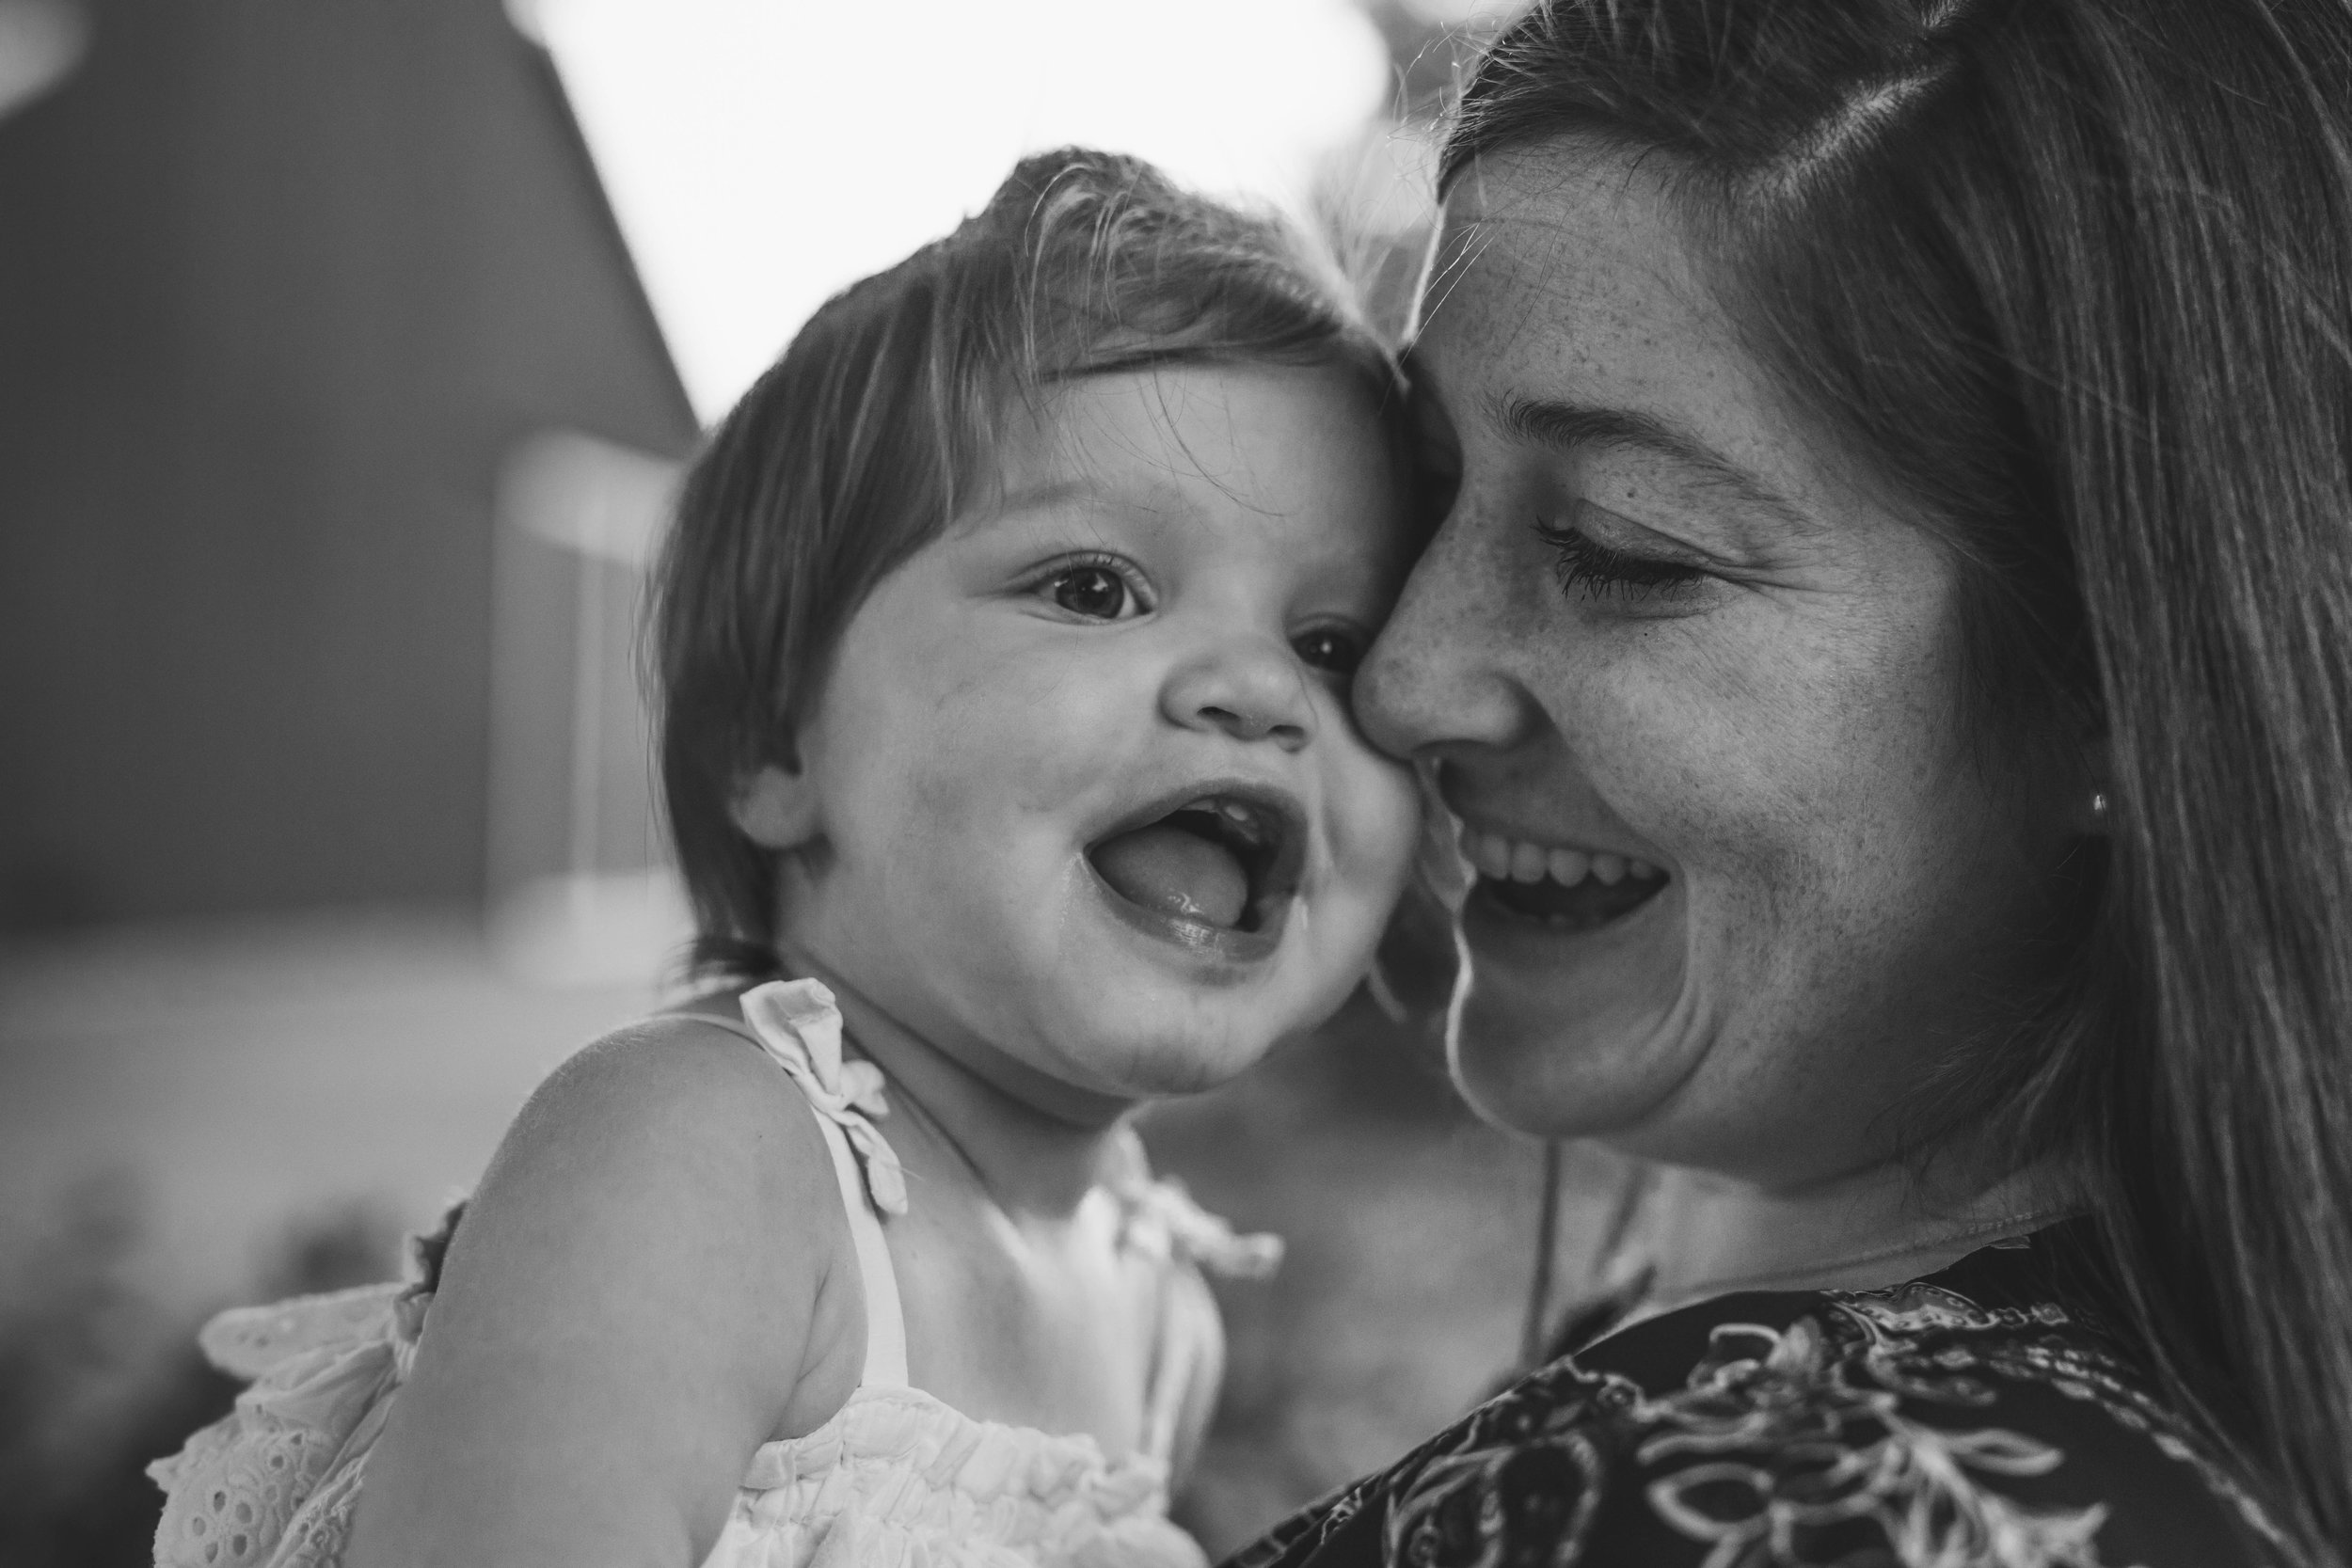 Playful and sweet family session in Issaquah at golden hour and twilight Mom and Dad with their toddler photographed by Chelsea Macor Photography in a playful and intimate way-26.jpg